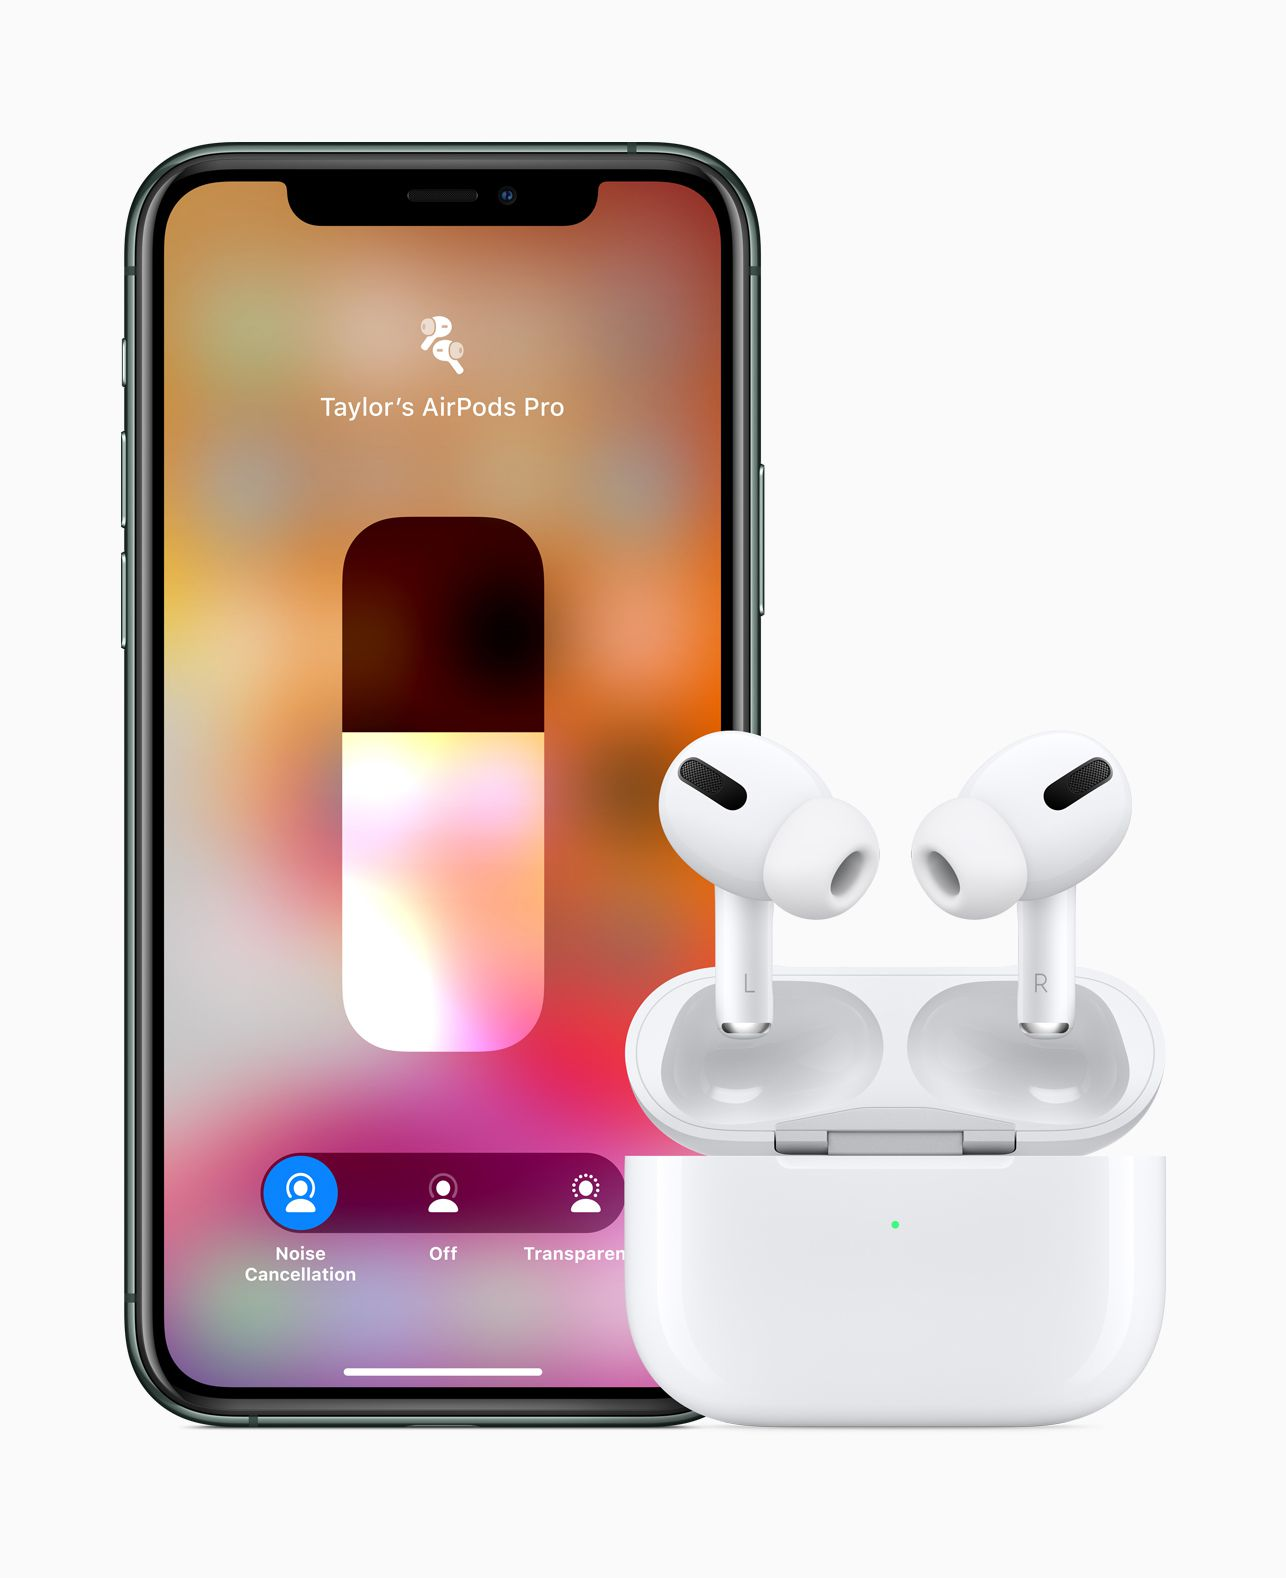 Apple's AirPods Pro with the iPhone control screen to change listening modes.